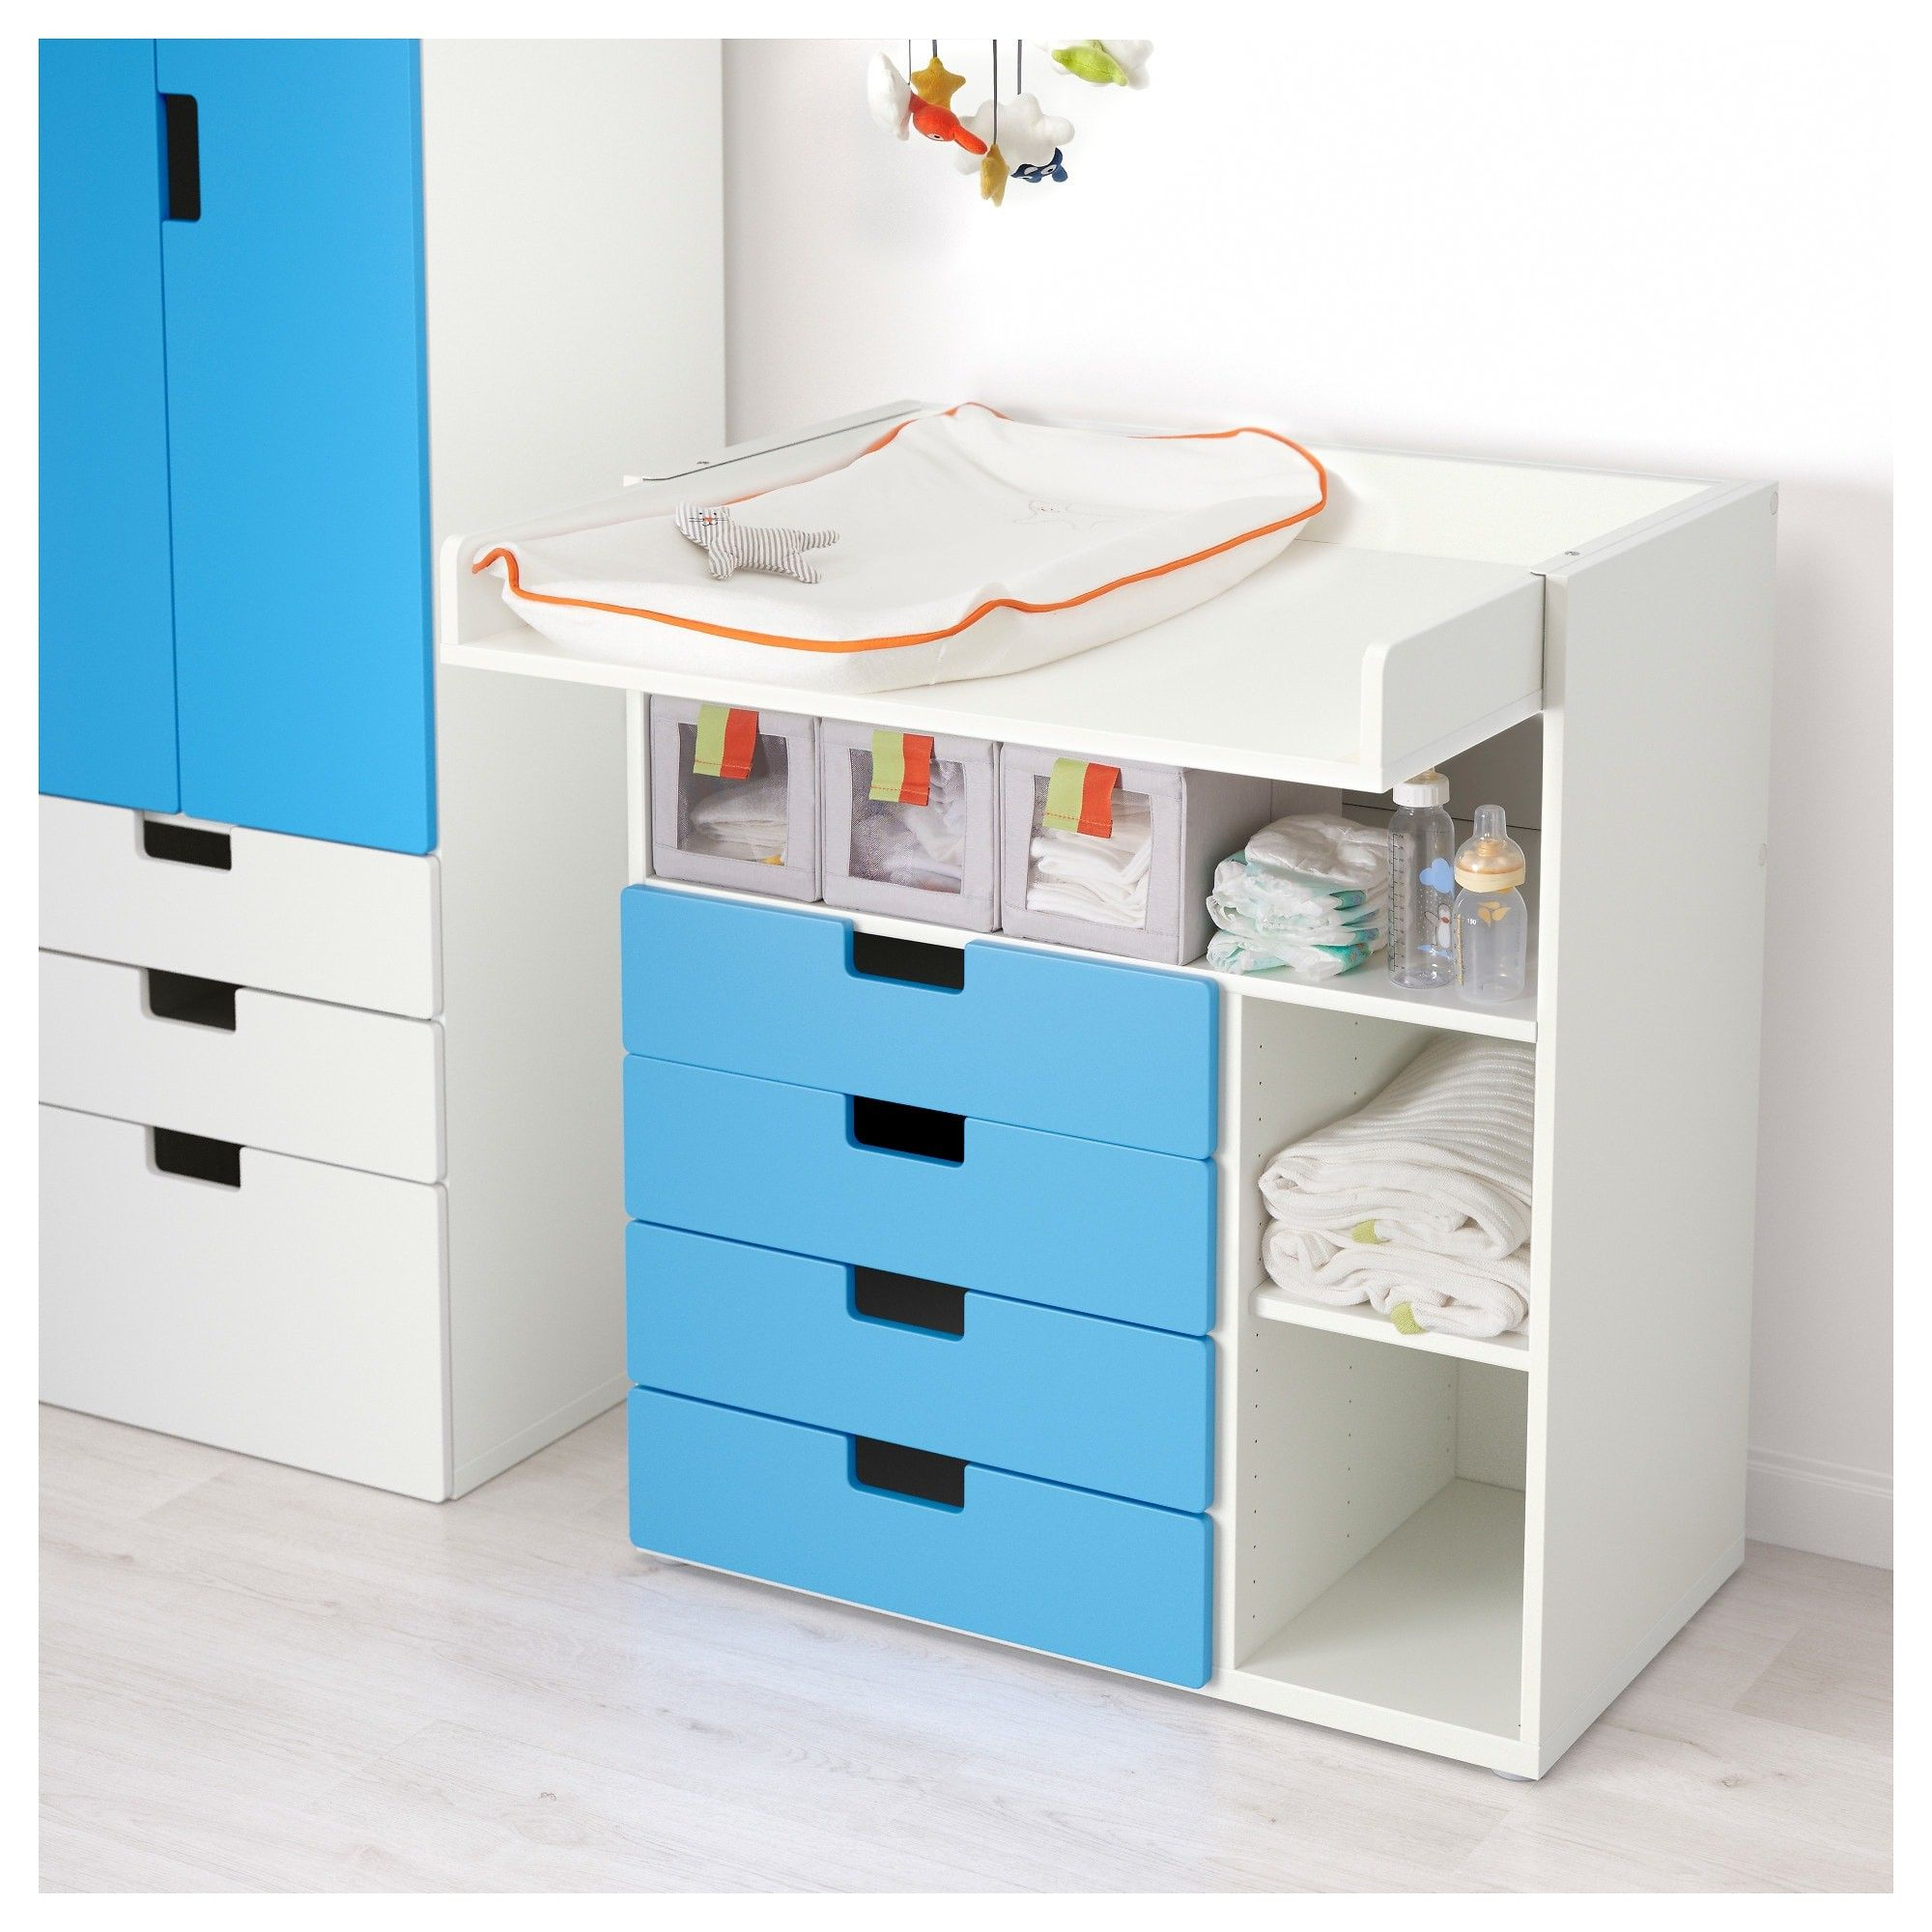 Table A Langer Pas Cher Ikea Pin By Ketty Corp On Idées De Meubles In 2019 Baby Changing